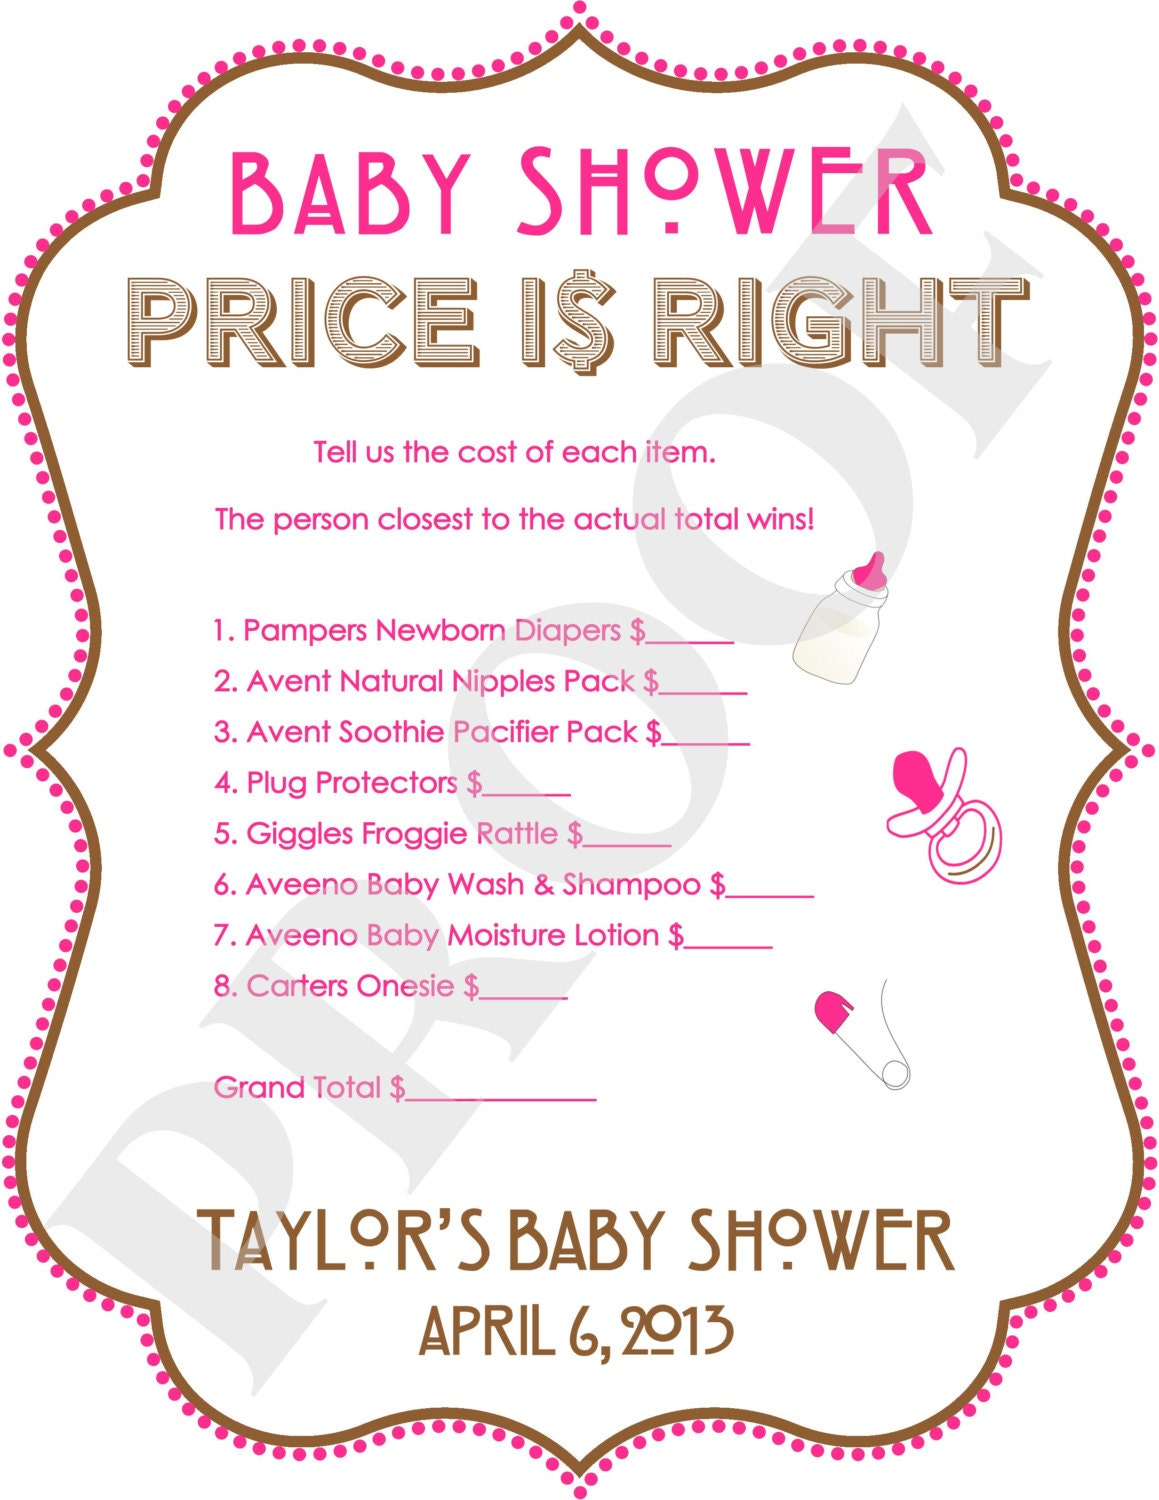 prices right baby shower games printable